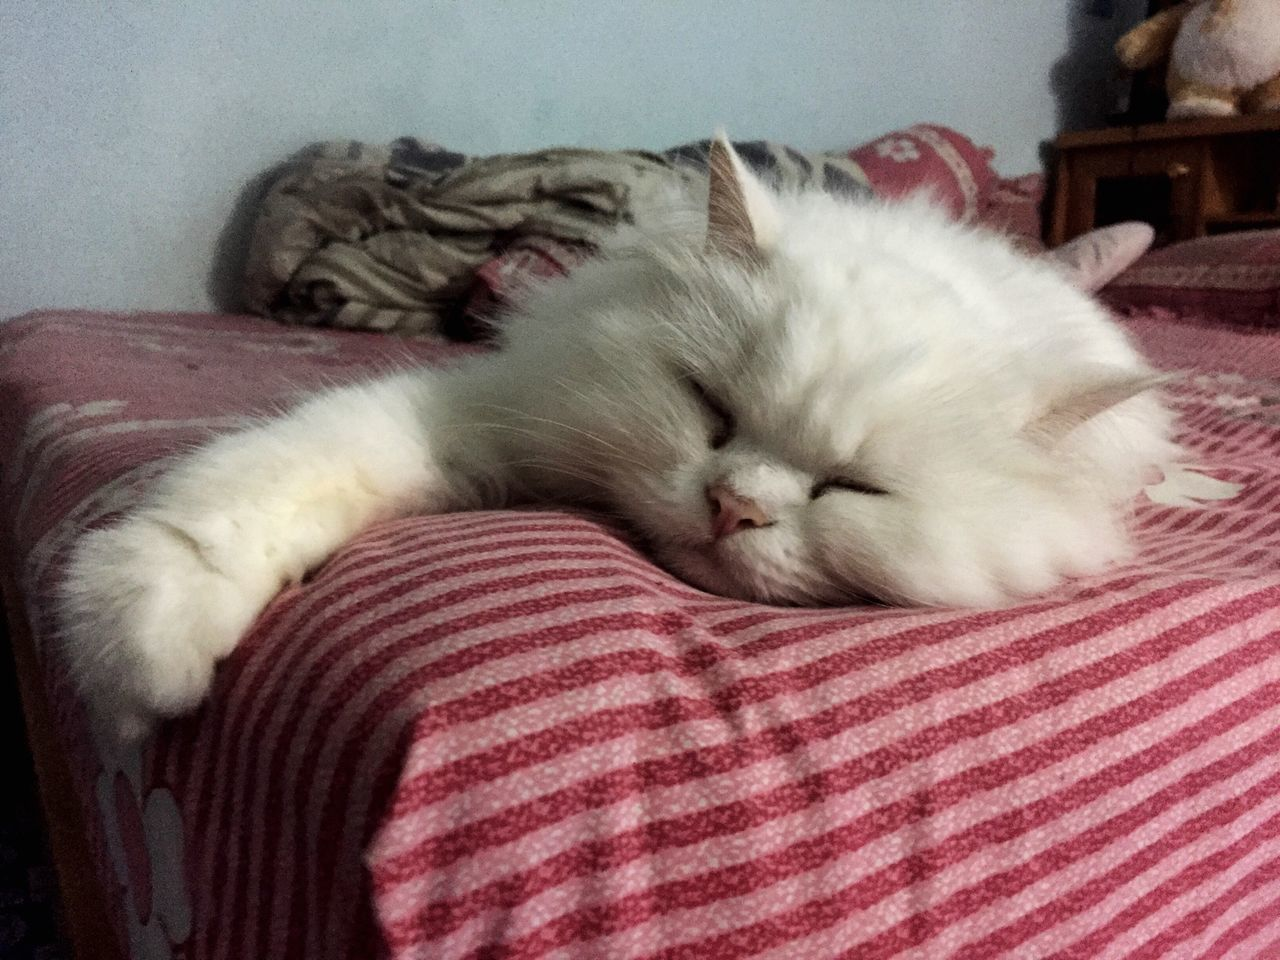 domestic cat, pets, animal themes, domestic animals, indoors, lying down, sleeping, one animal, mammal, feline, relaxation, eyes closed, bed, cute, no people, close-up, persian cat, day